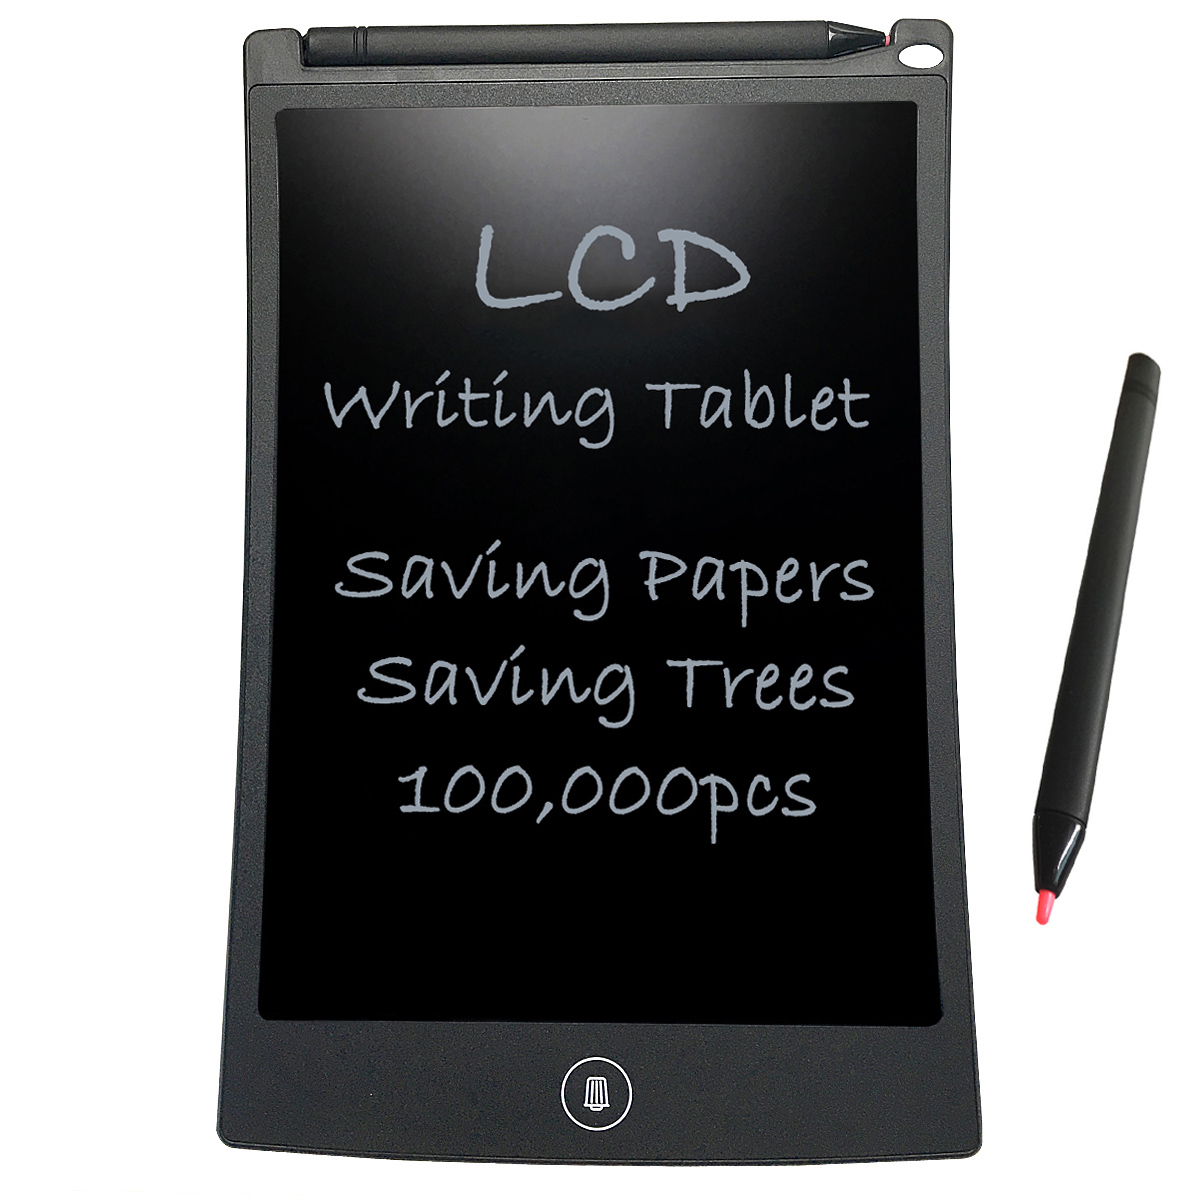 8 5 inch E-Pad writing tablet